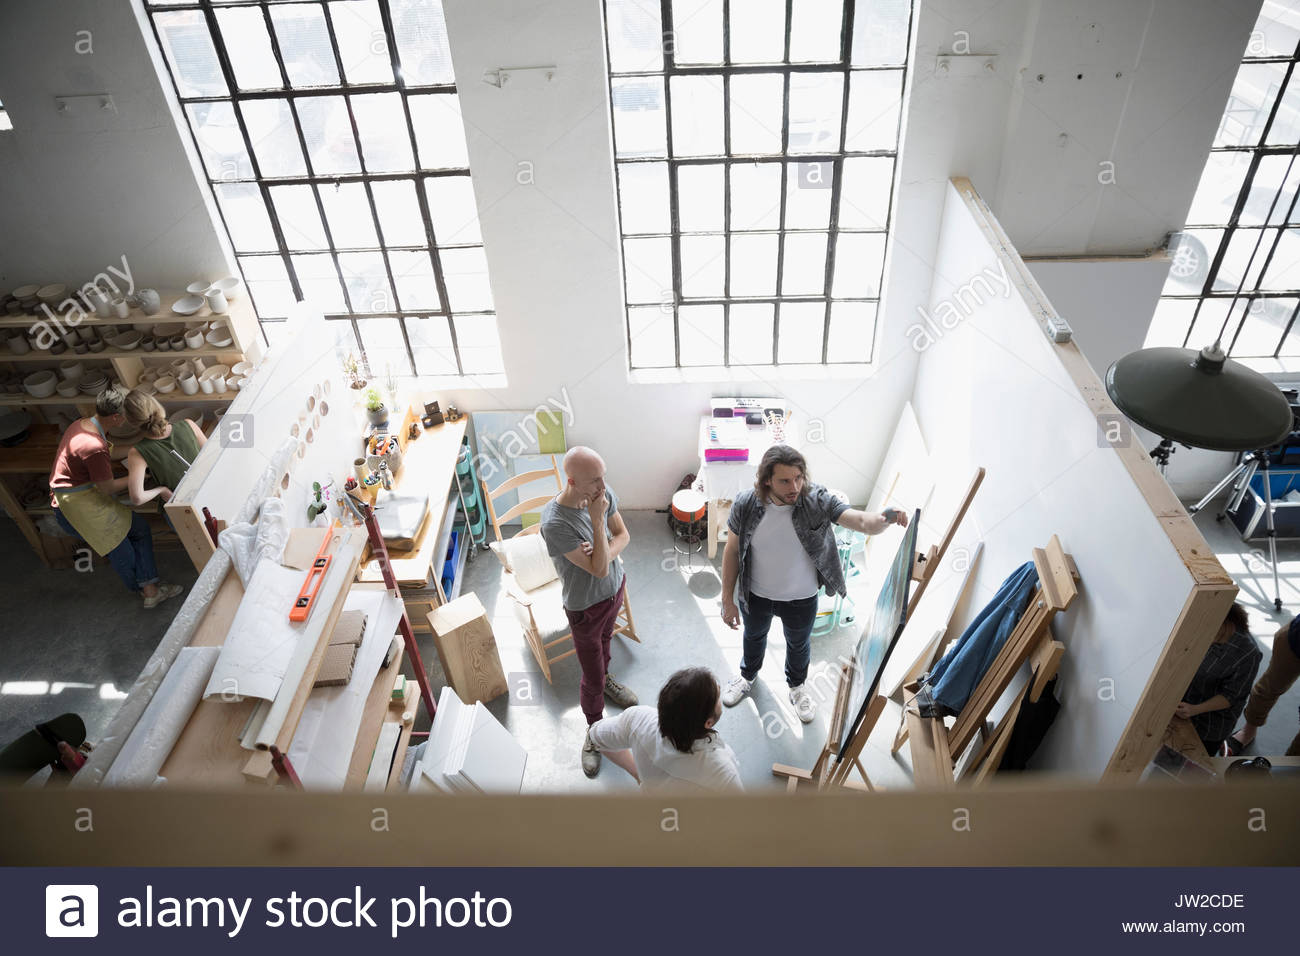 View from above painter students in painting class discussing canvas painting on easel in art studio - Stock Image